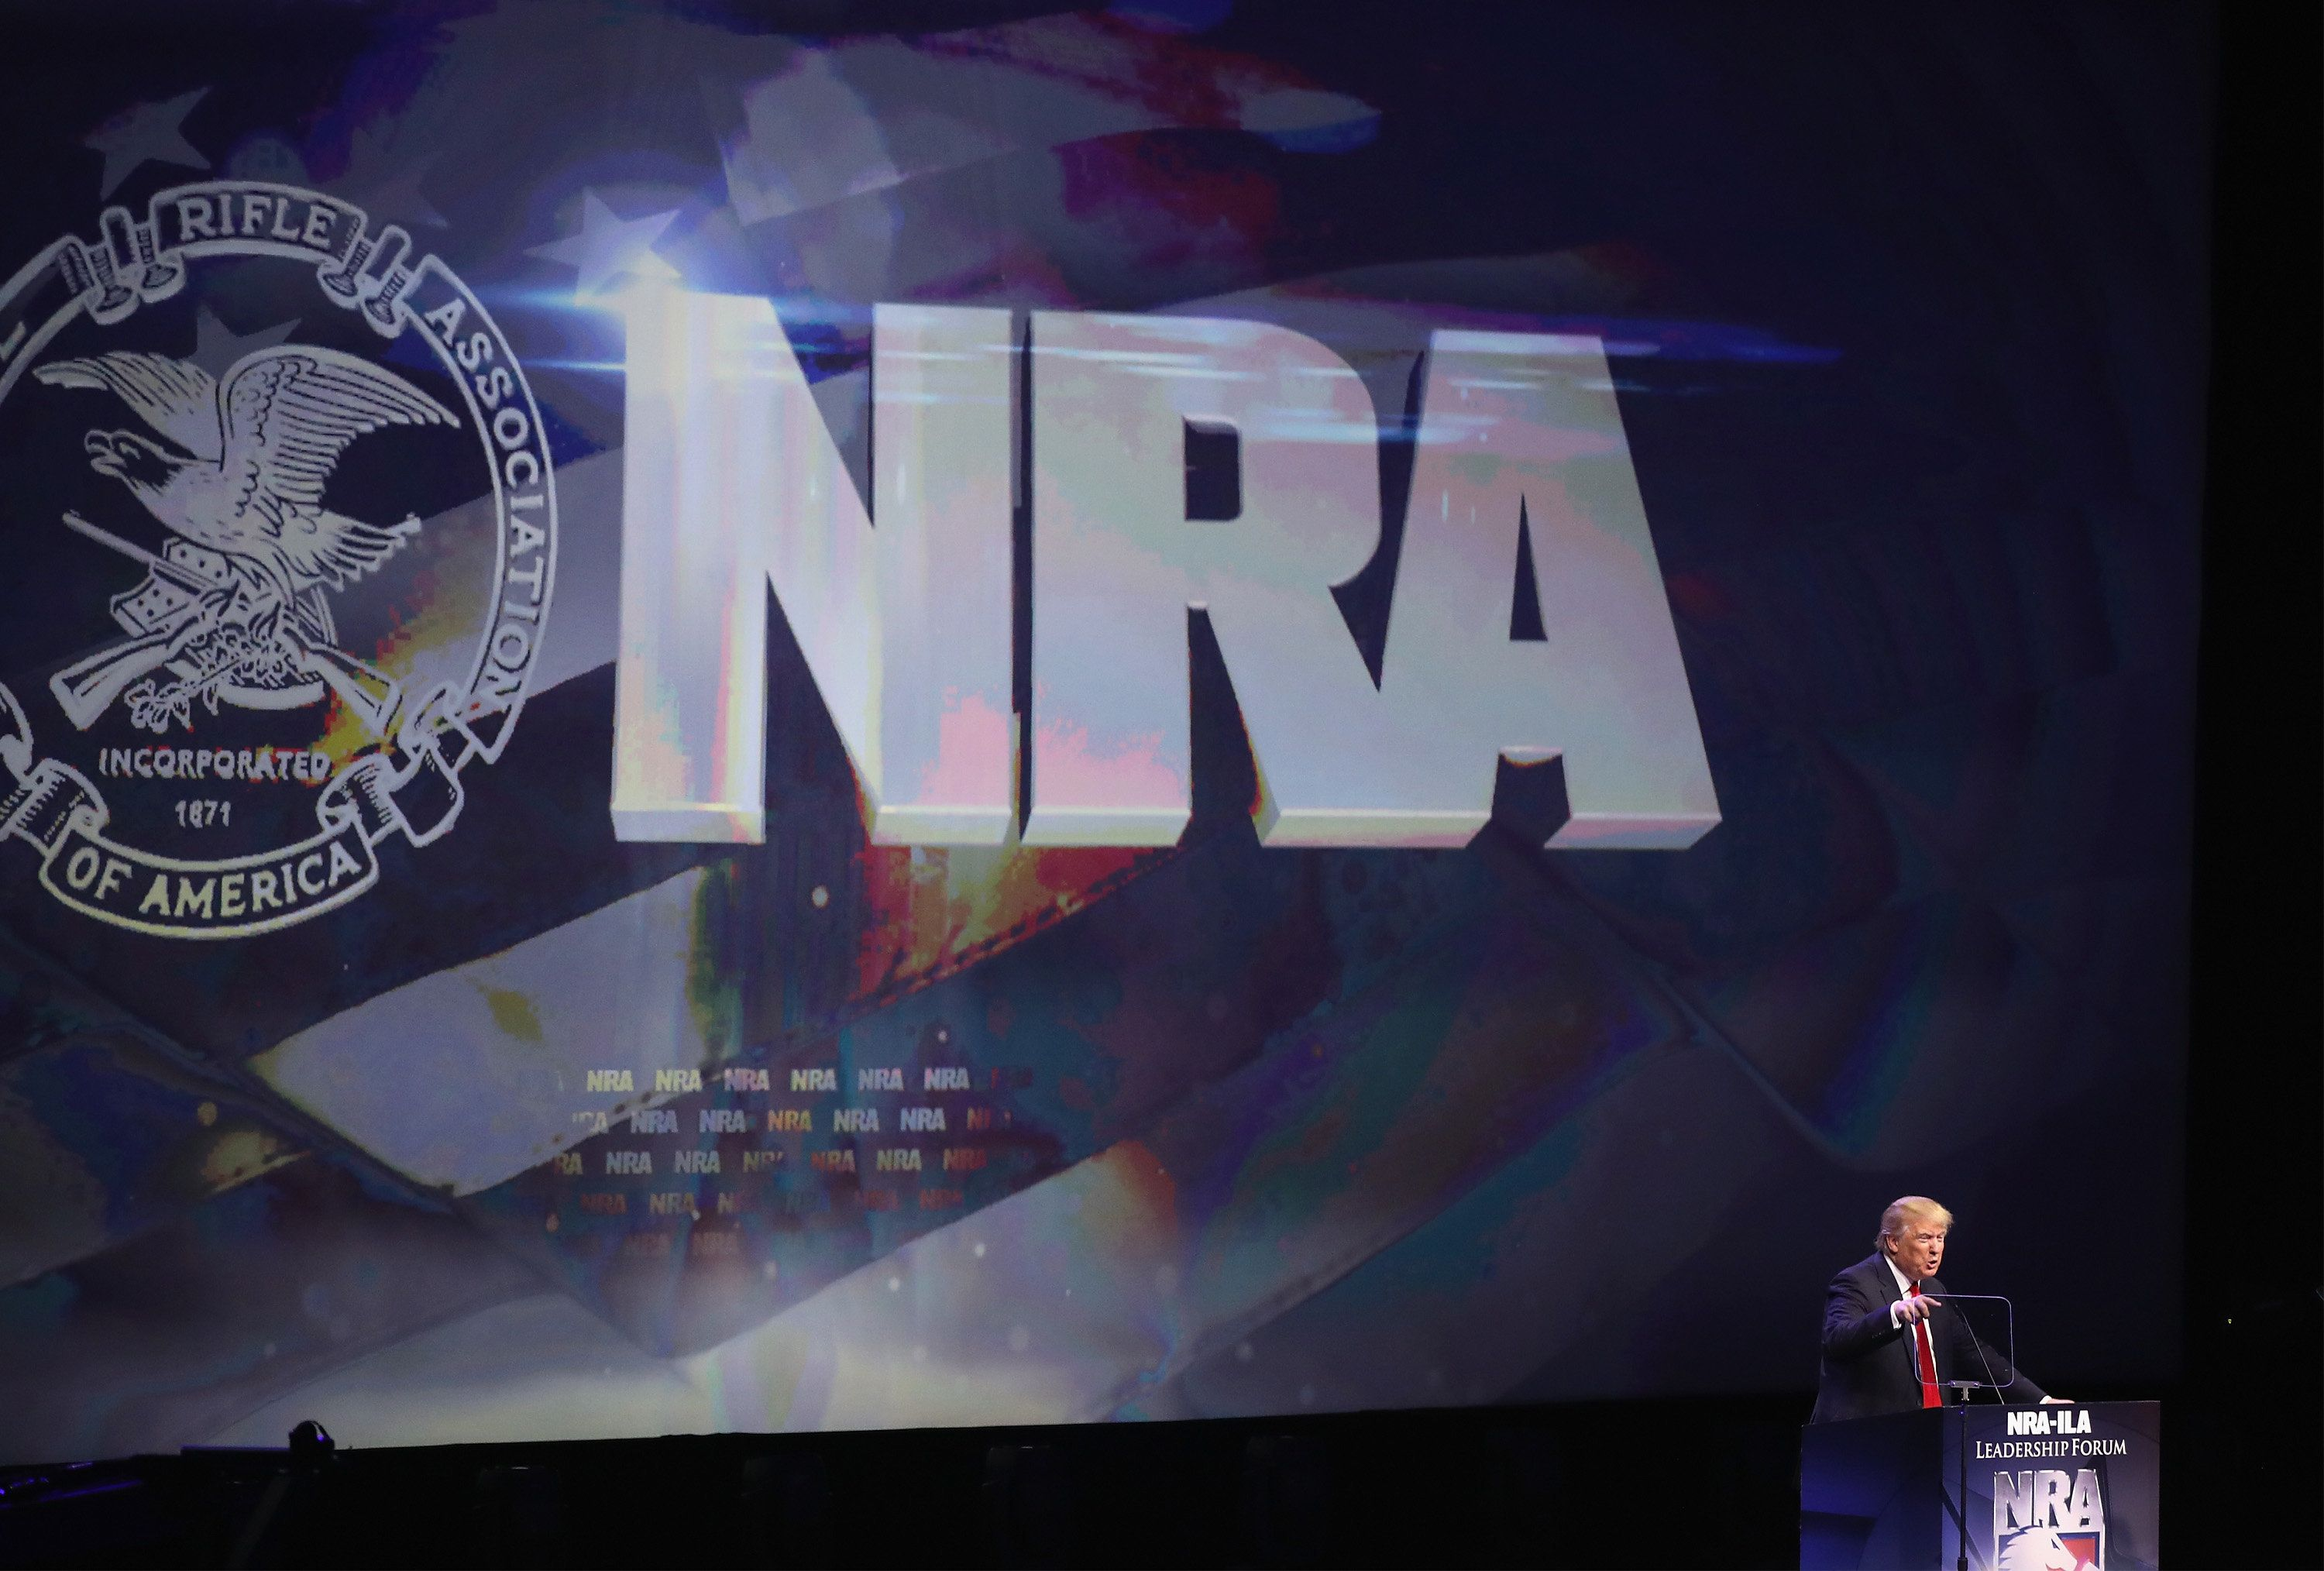 Trump Exalts Gun Rights at NRA Conference